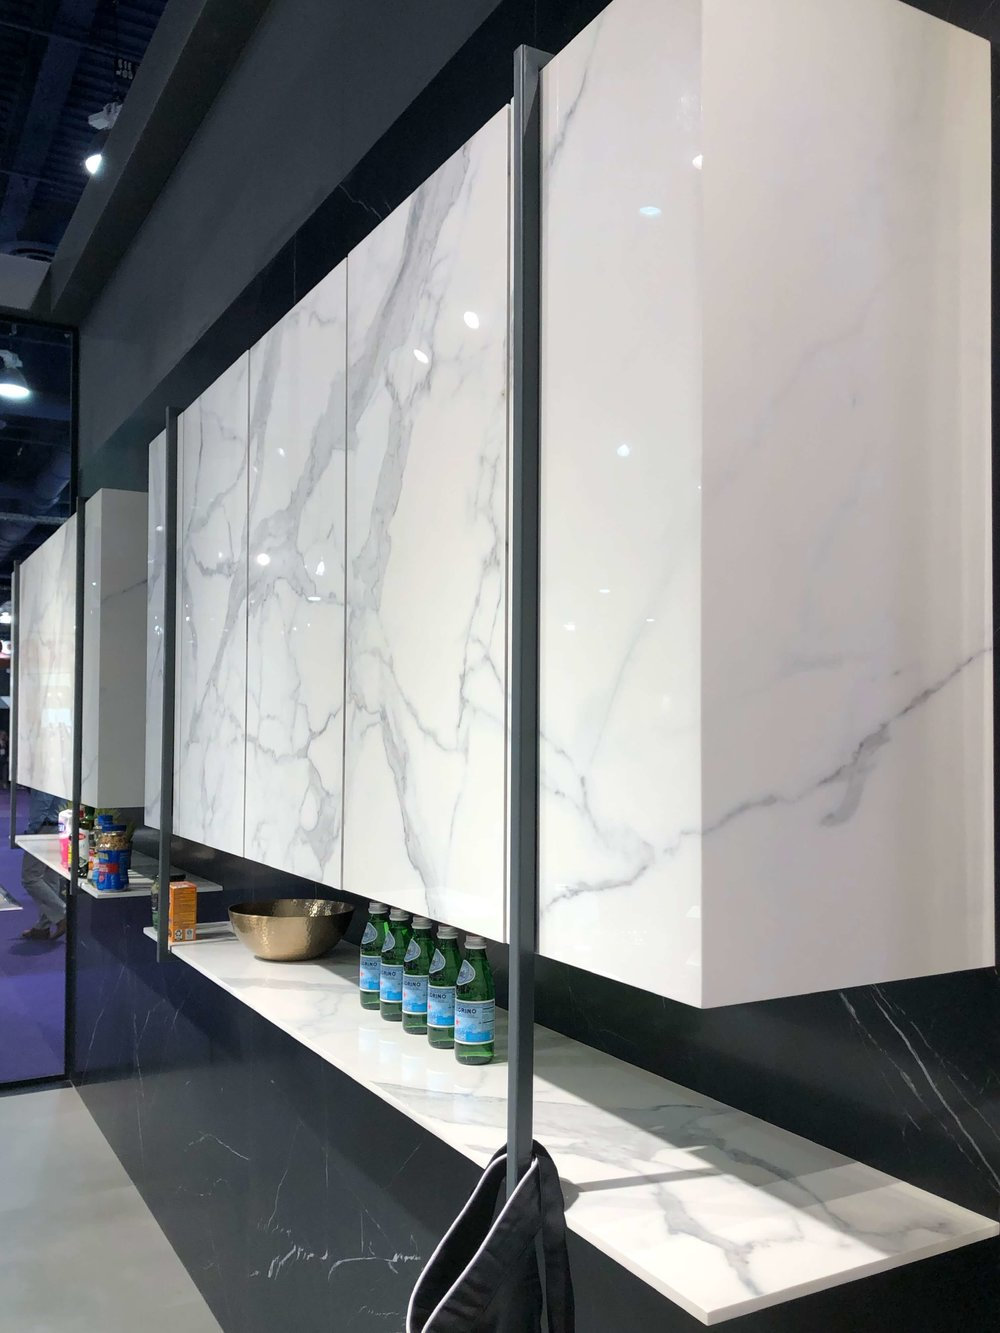 Marble look porcelain slabs used as cabinetry fronts from Sapienstone | KBIS 2019 Surfaces Trends